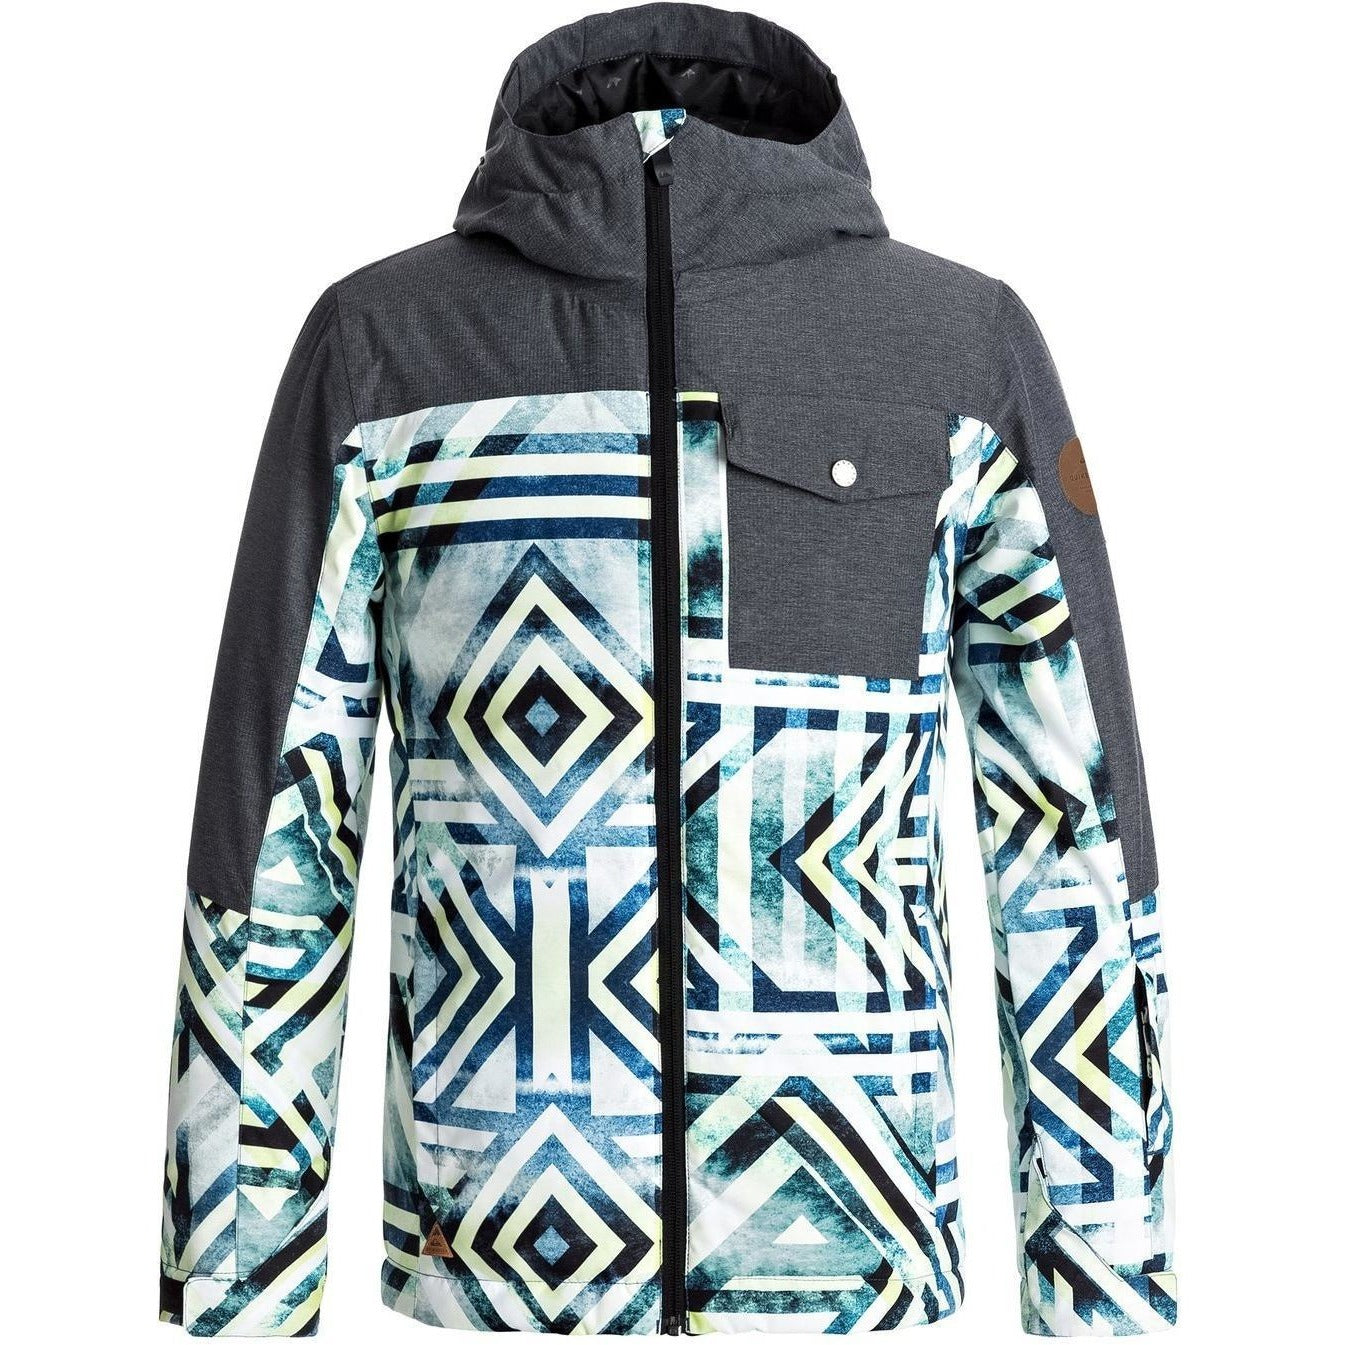 Quiksilver Boys 8-16 Mission Block Jacket - 88 Gear